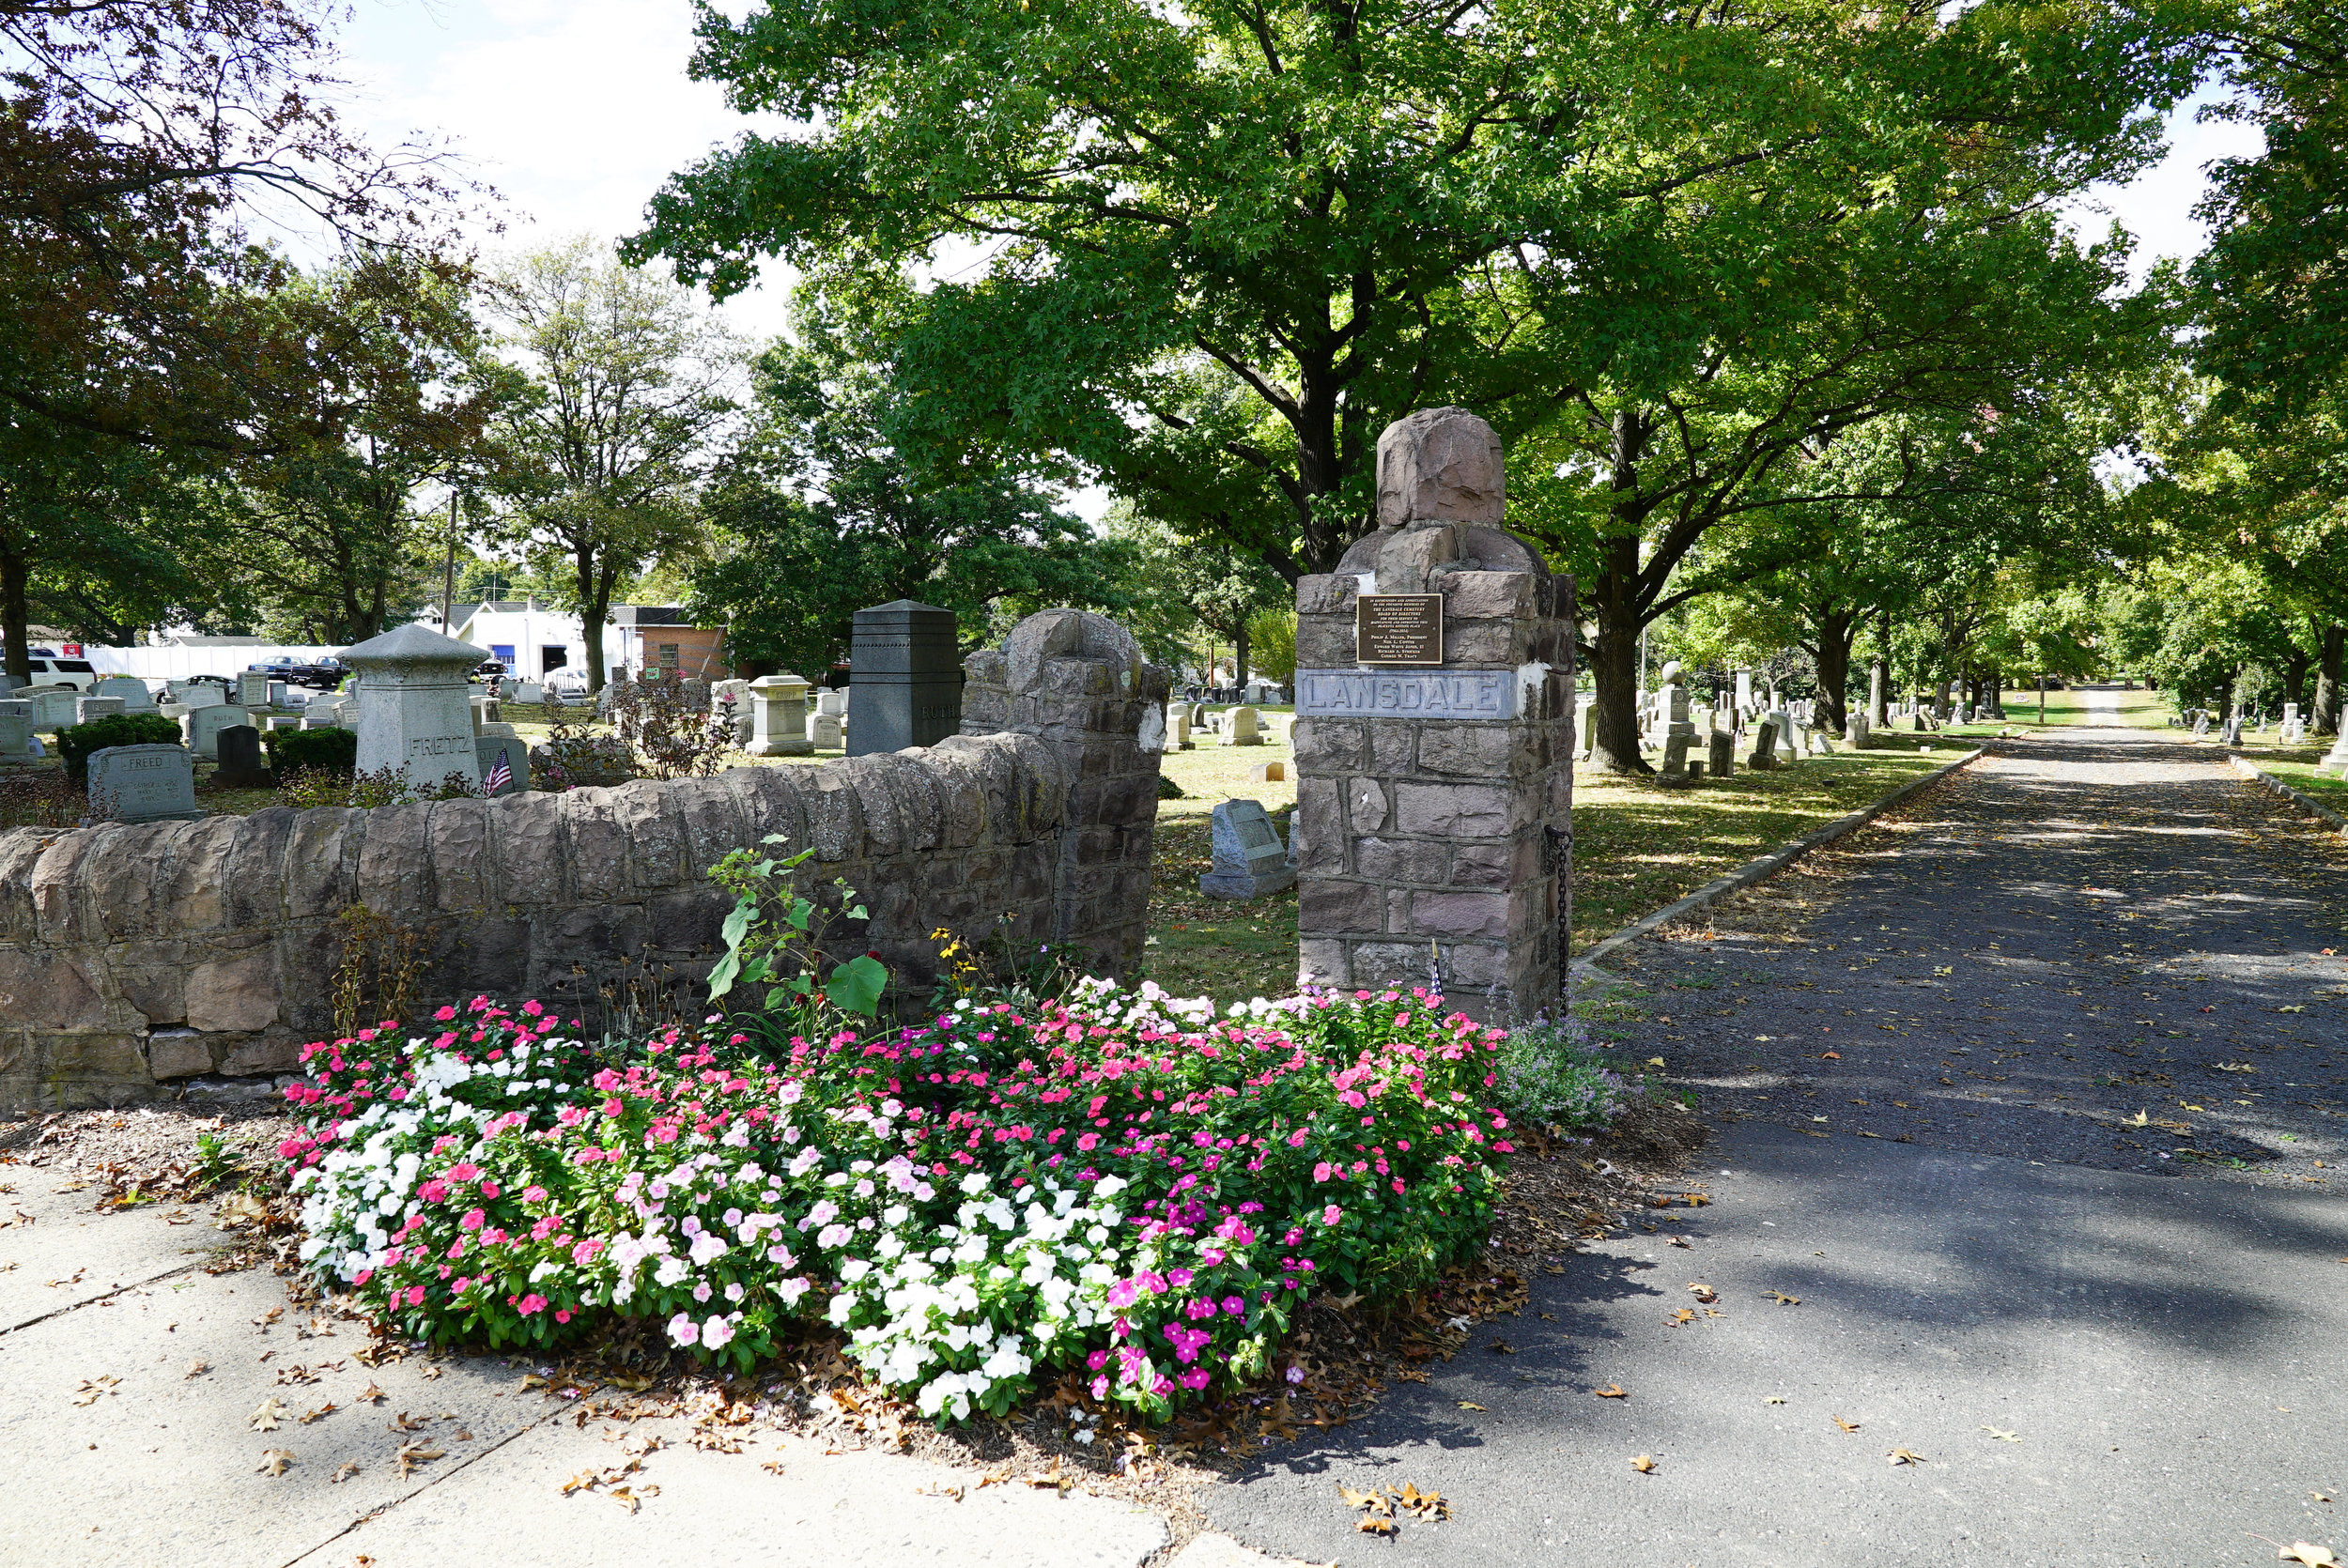 At the entrance to Lansdale Cemetery. Lansdale, Pennsylvania.